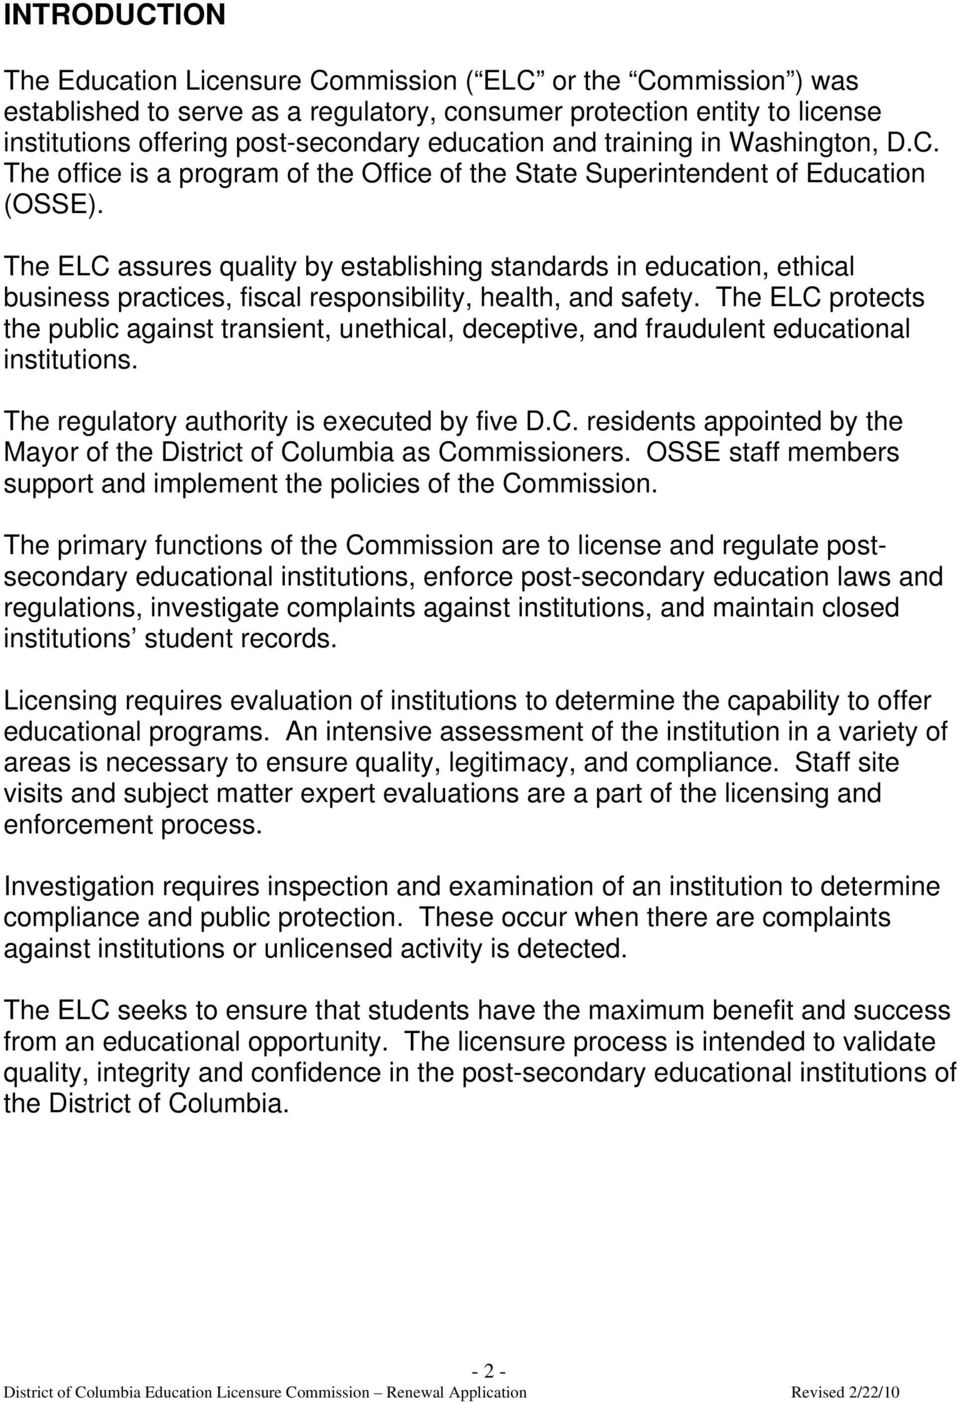 The ELC assures quality by establishing standards in education, ethical business practices, fiscal responsibility, health, and safety.